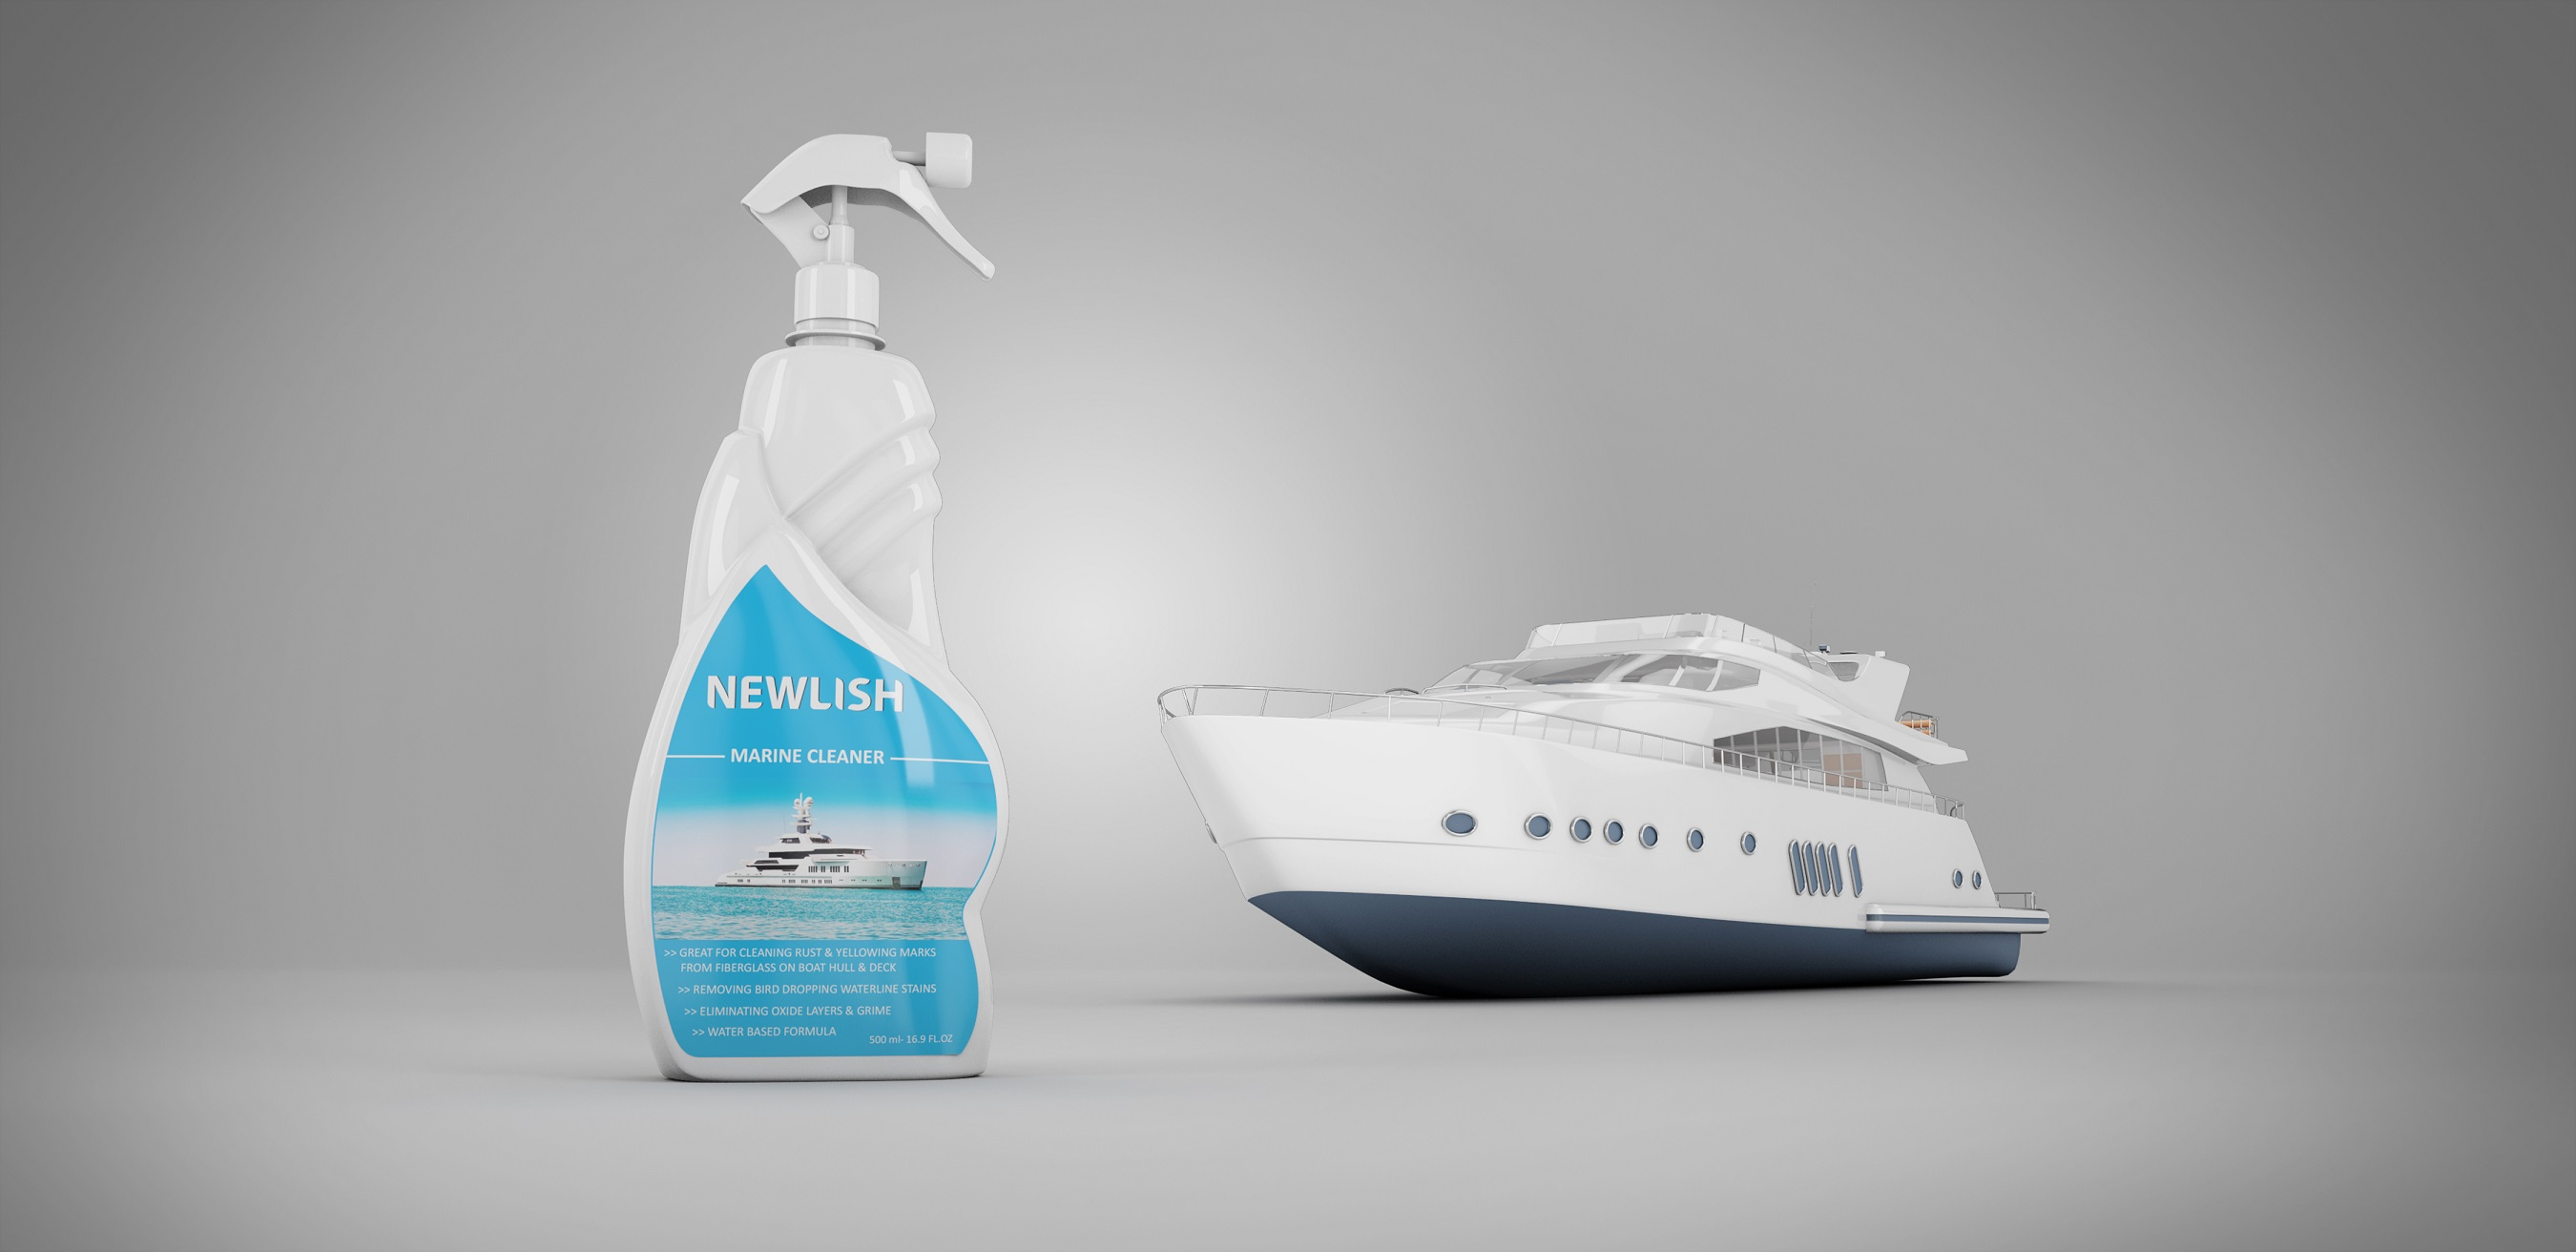 NEWLISH Marine Cleaner